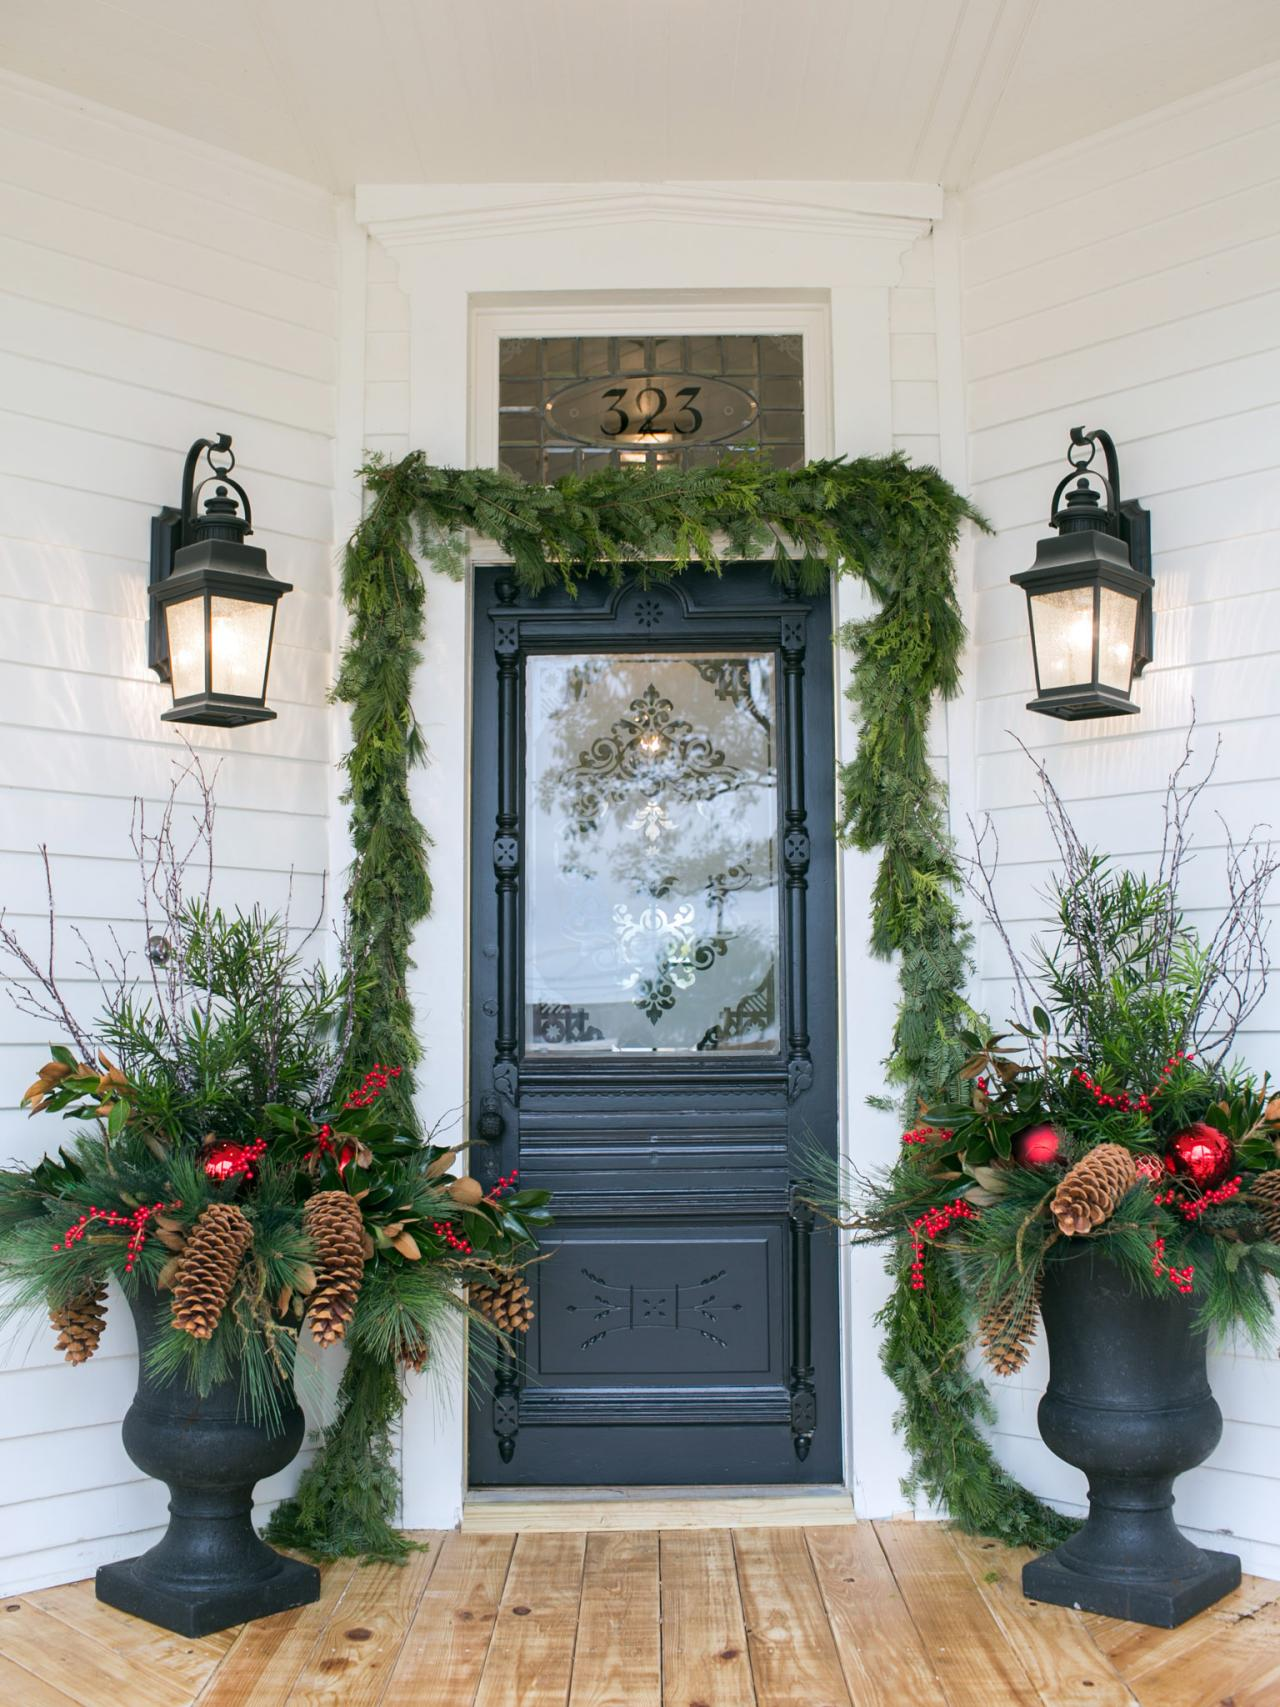 hgtv s fixer upper holiday special hgtv s decorating holiday decorating and entertaining ideas amp how tos hgtv